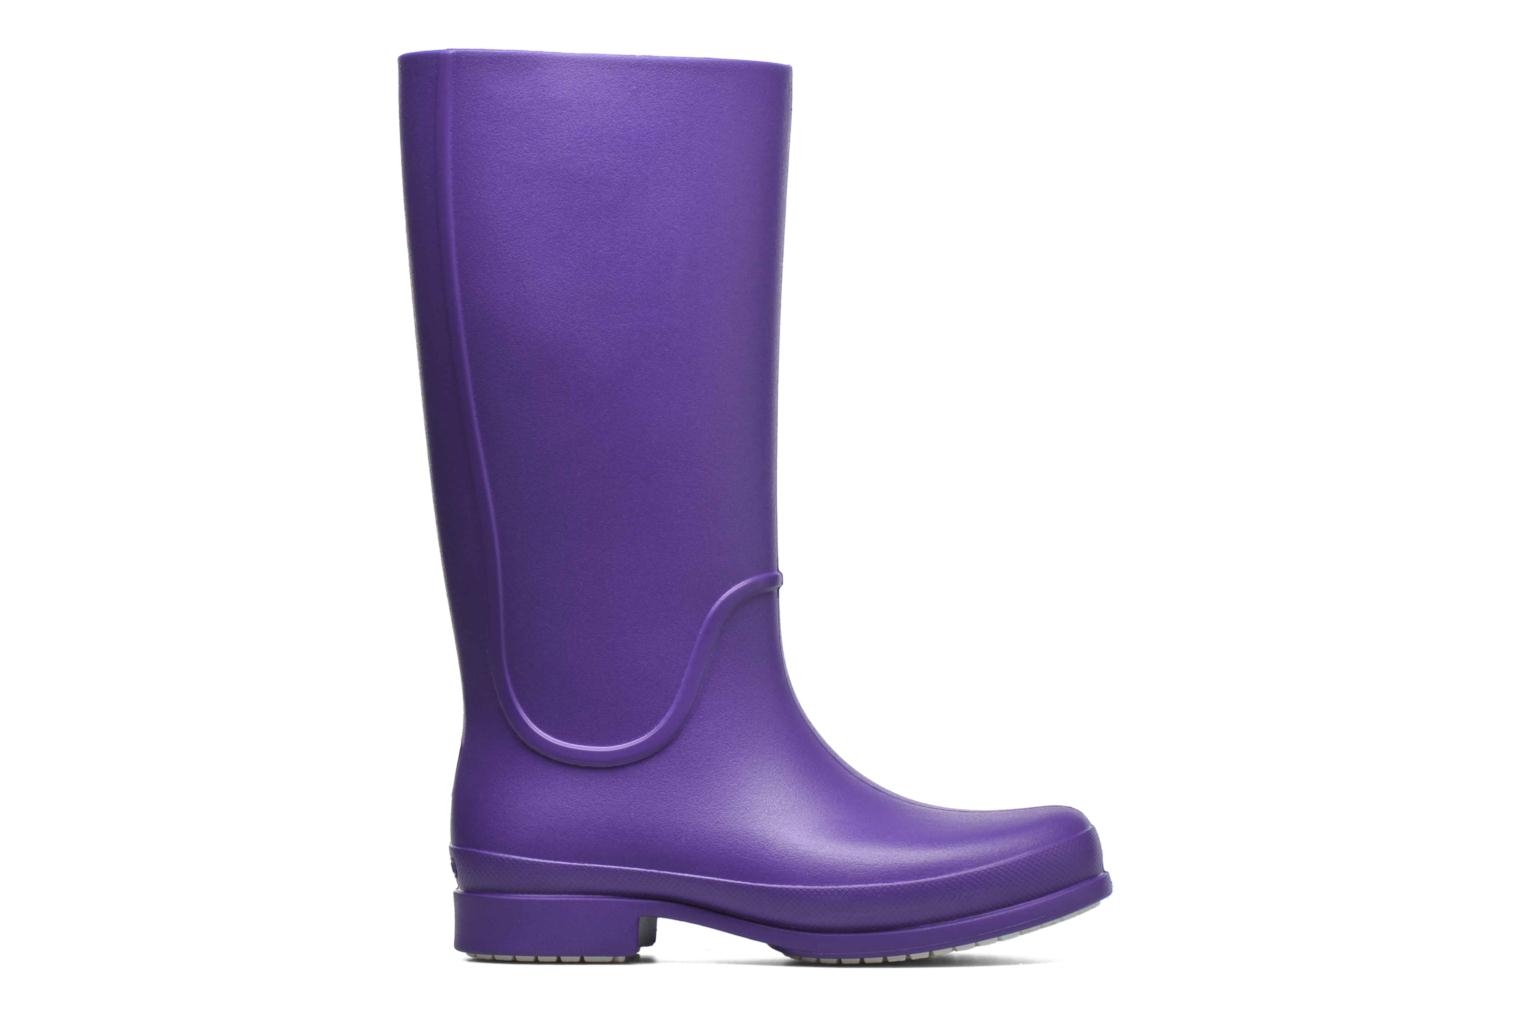 Wellie Rain Boots F Ultraviolet/Oyster